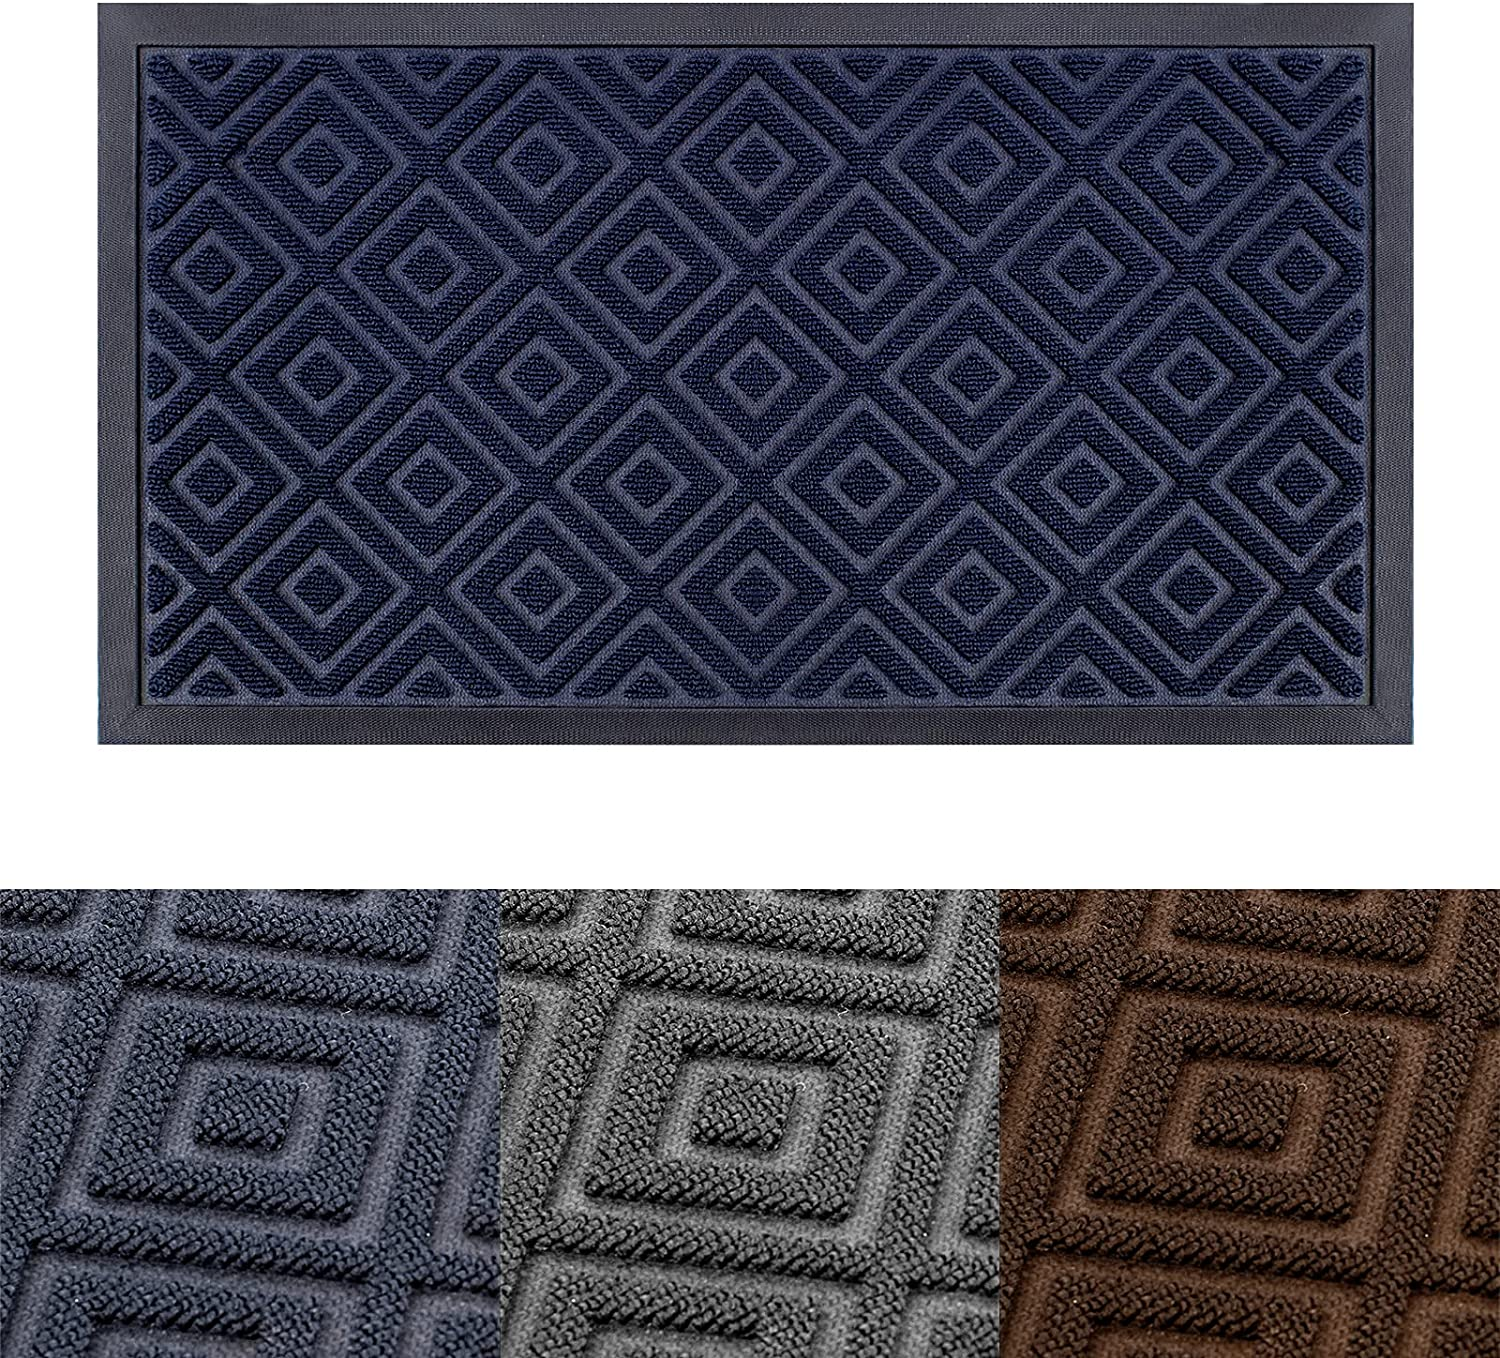 """Entry Mats for Front Door - Durable Outdoor Indoor Entry Rug Home Welcome Doormat Low-Profile Entrance Rug for Livingroom, Laundry, Bathroom Entryway (35""""x23.5"""", Navy Blue)"""